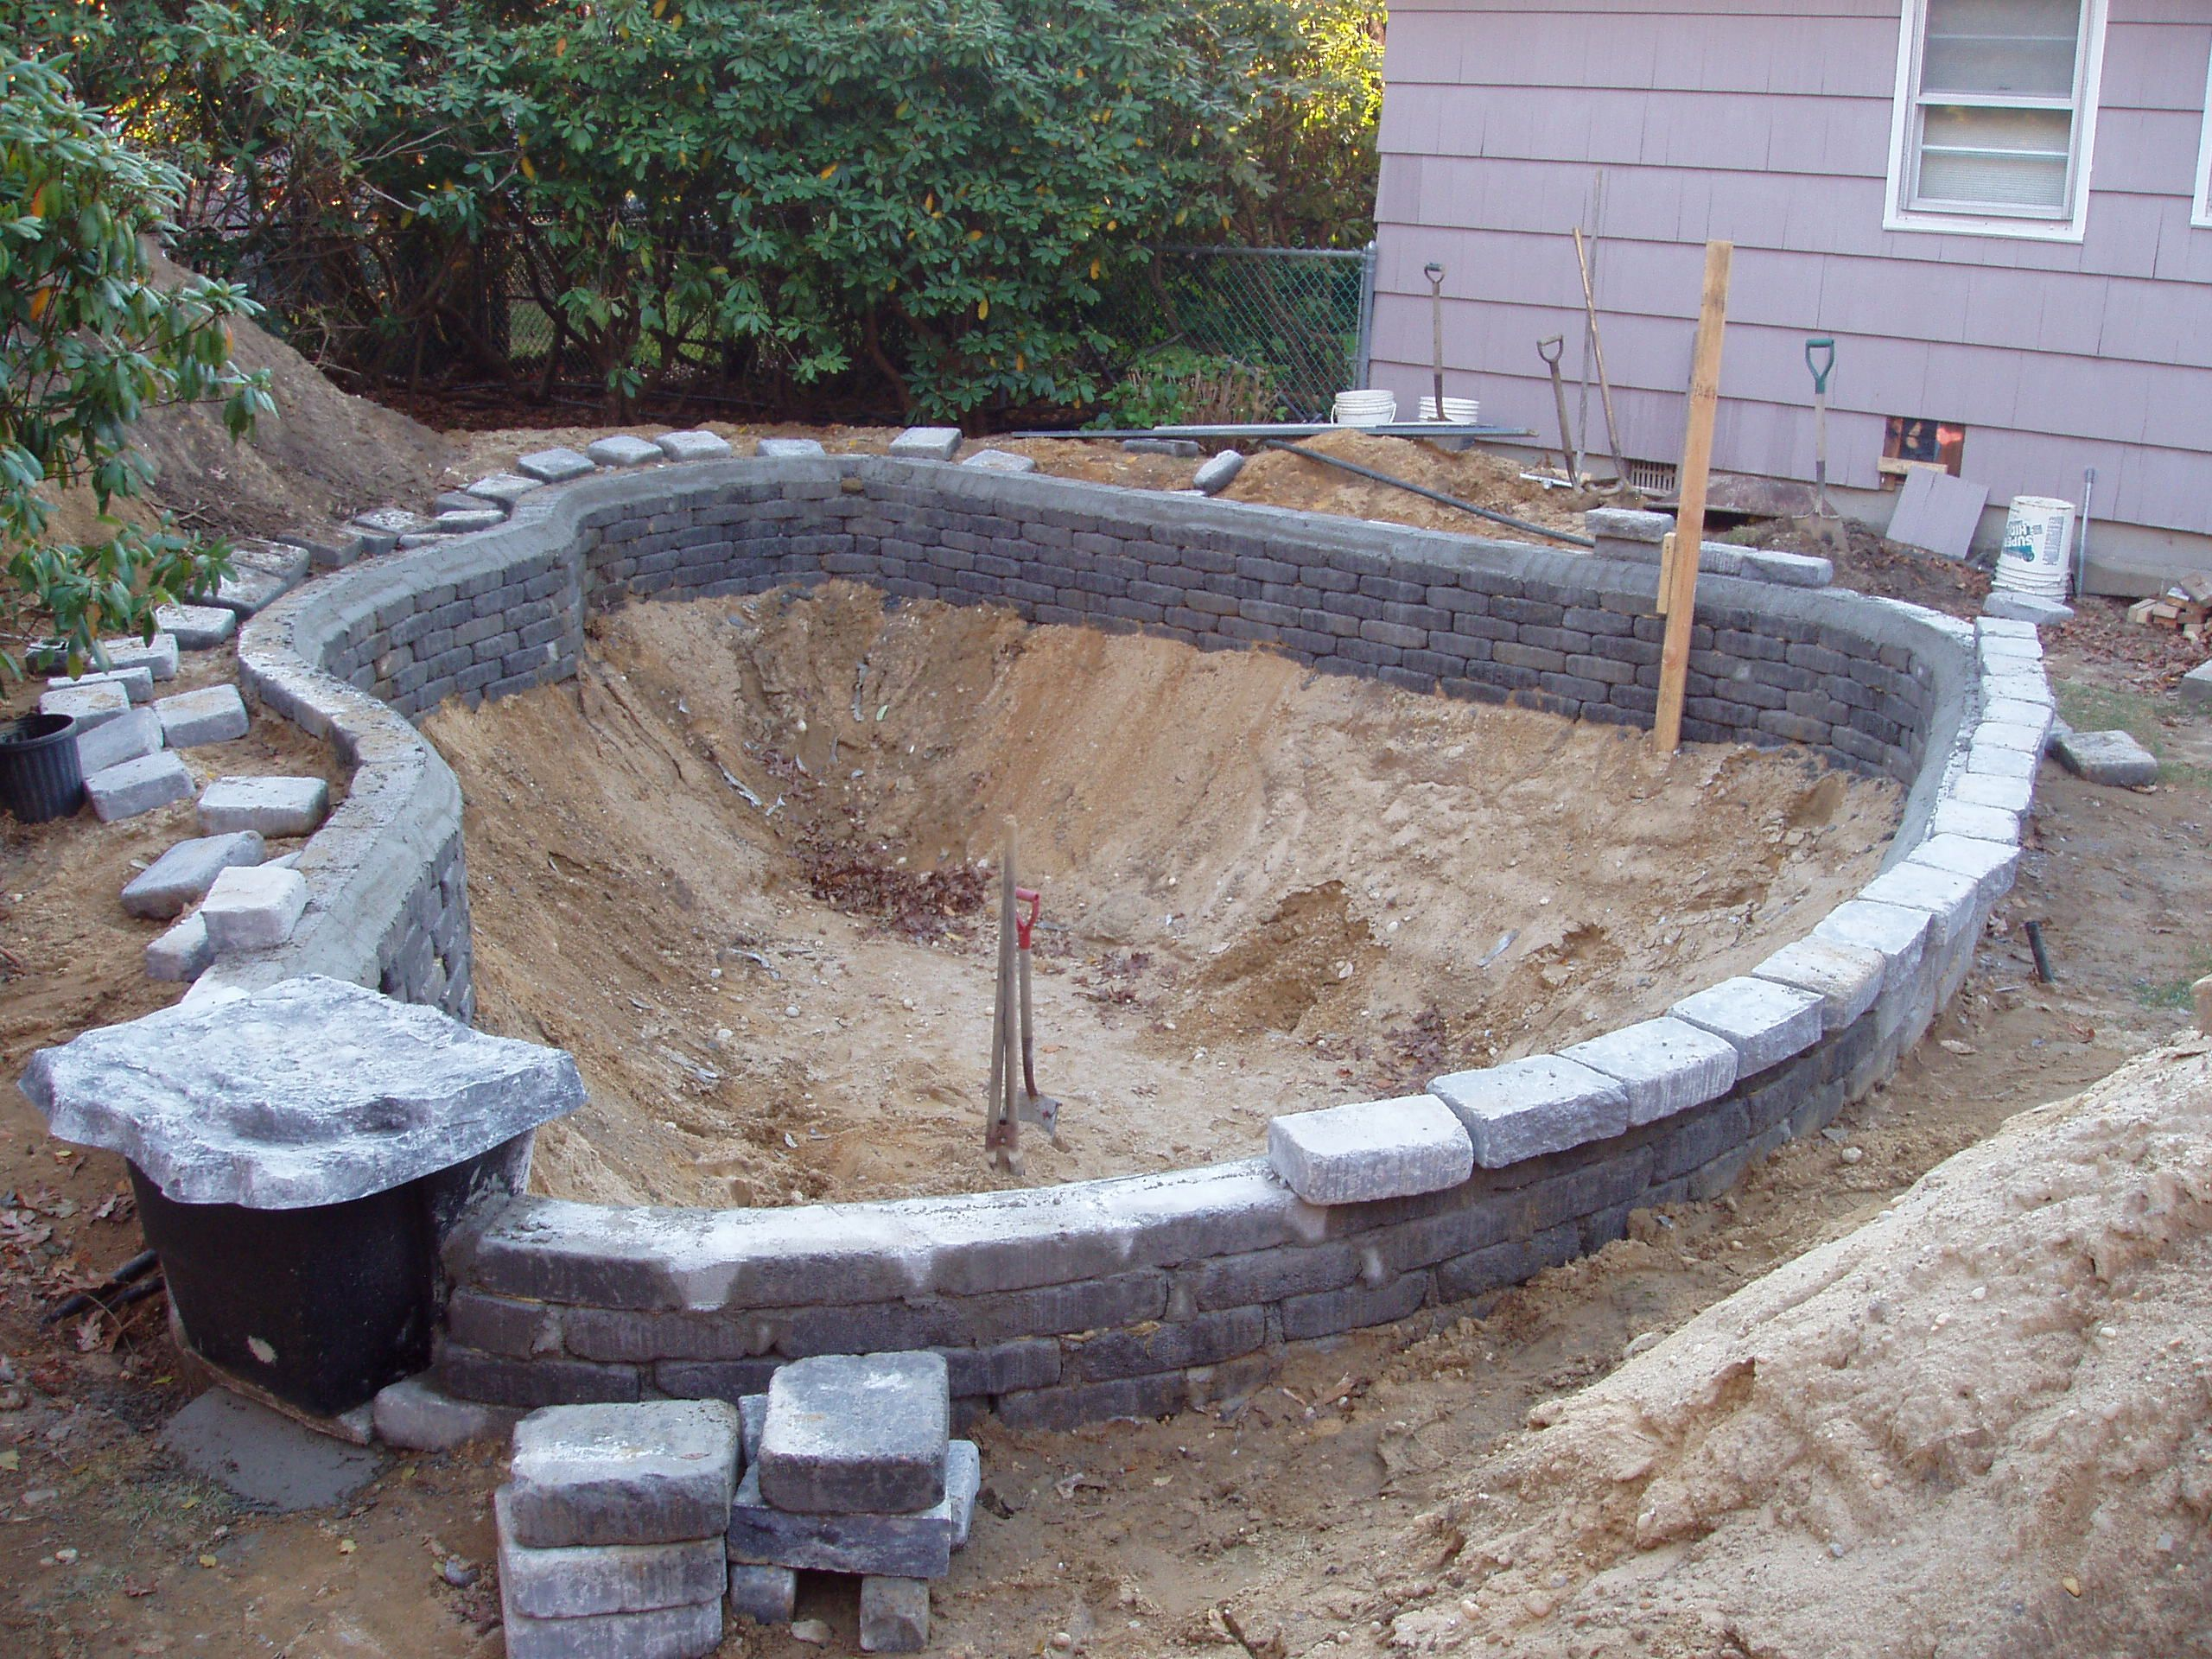 Pond design and construction google search aquaponics for Making a water garden